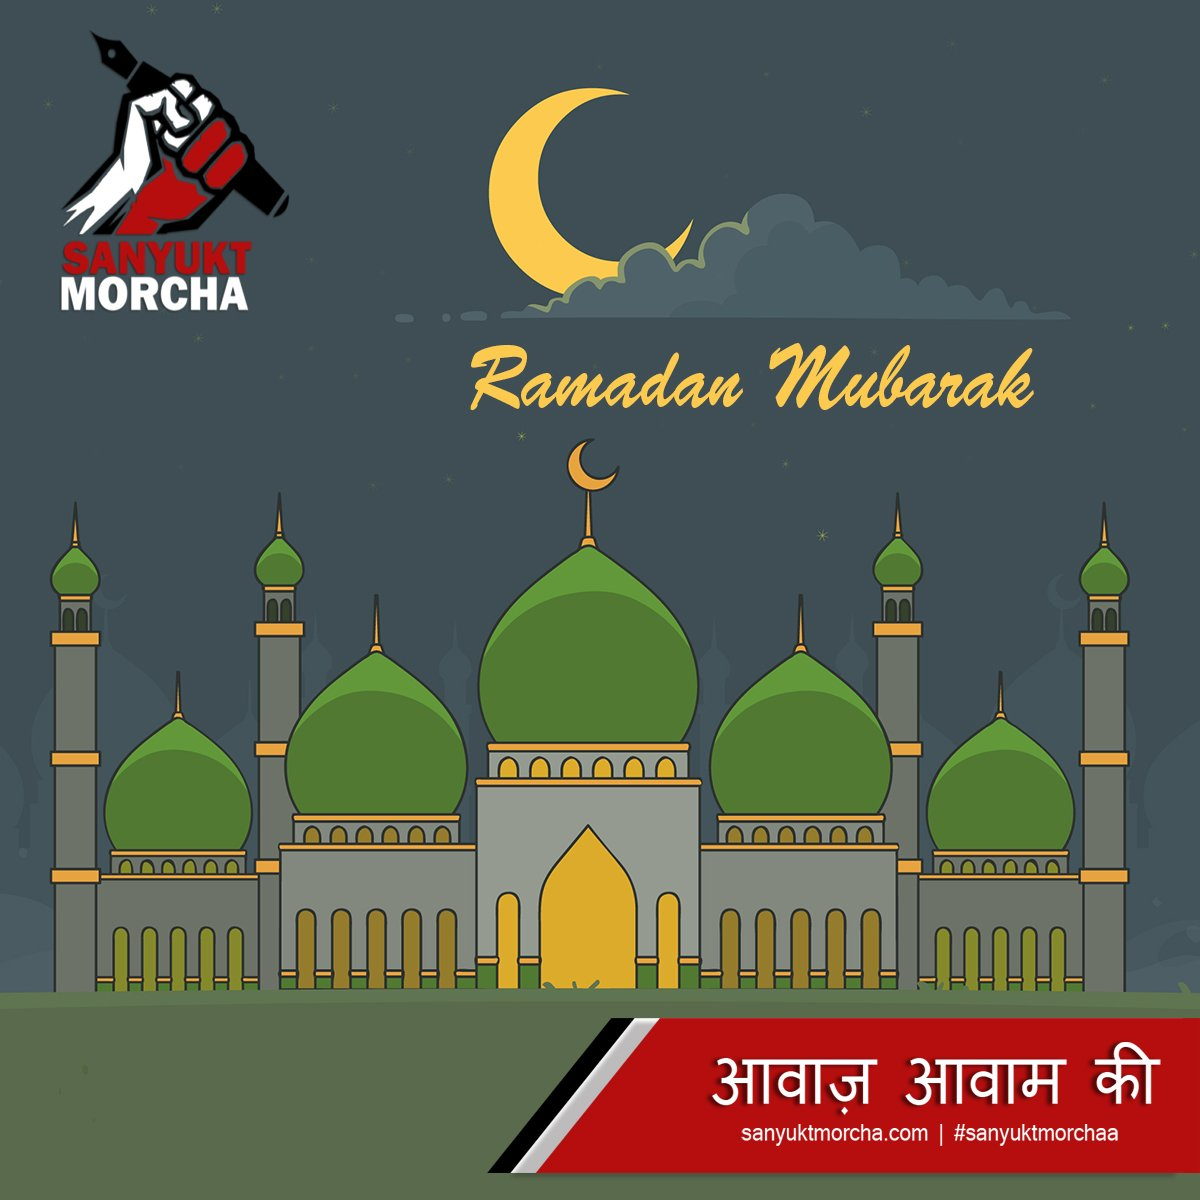 Sanyukt Morcha's photo on Ramadan Mubarak